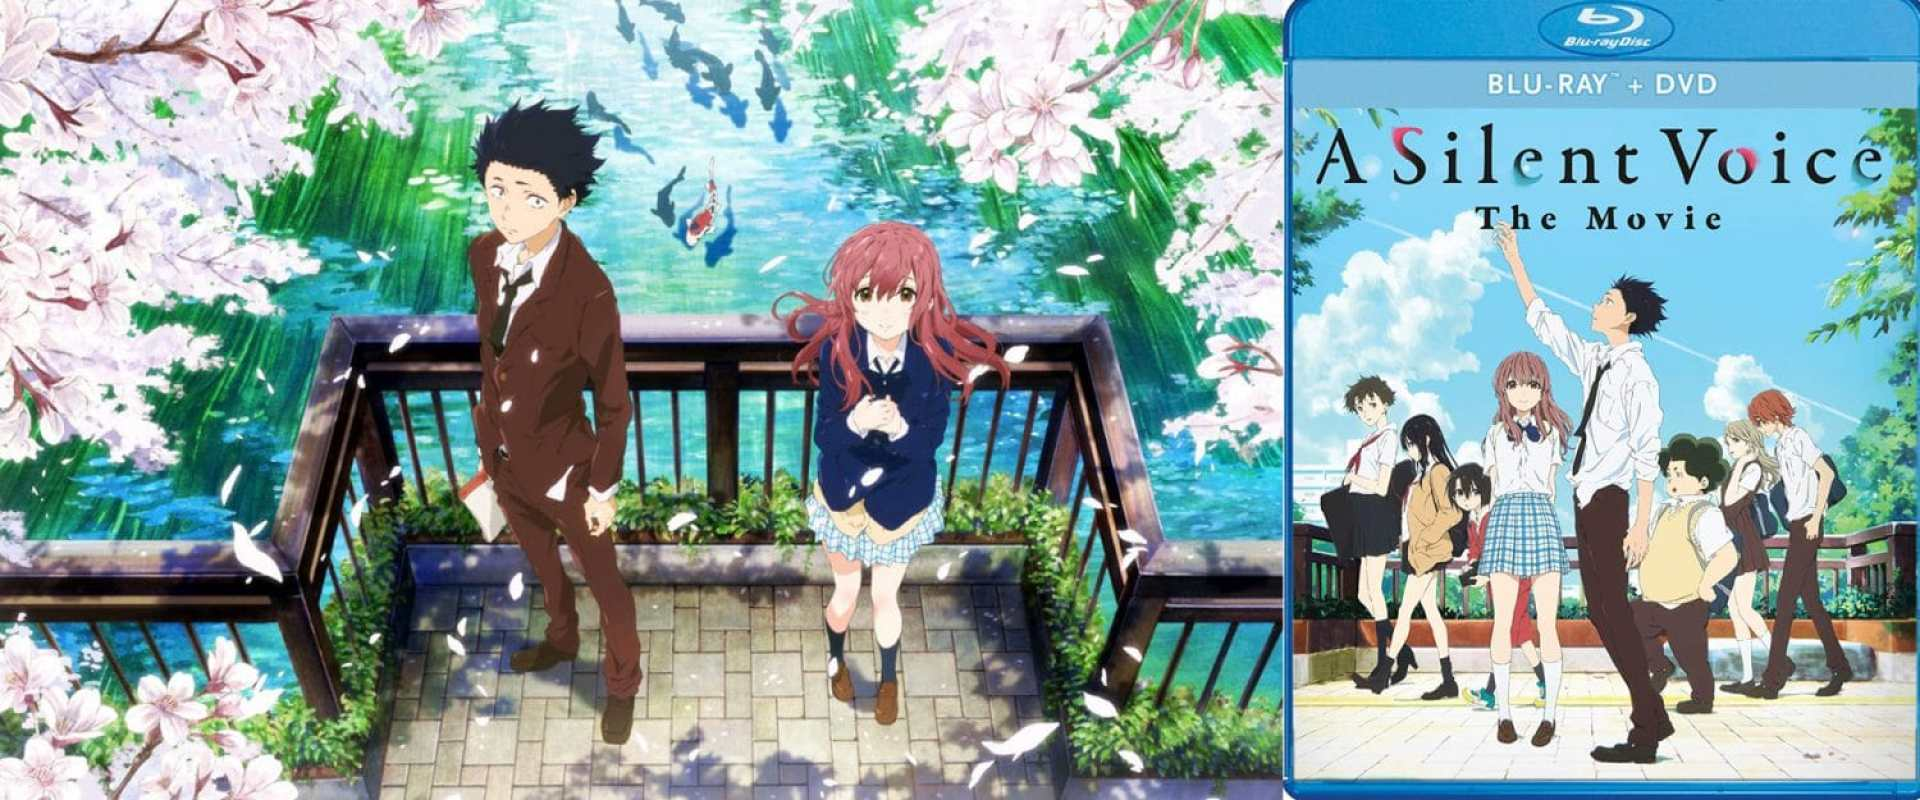 Silent Voice: The Movie arrives on Blu-ray this week from Shout! Factory.